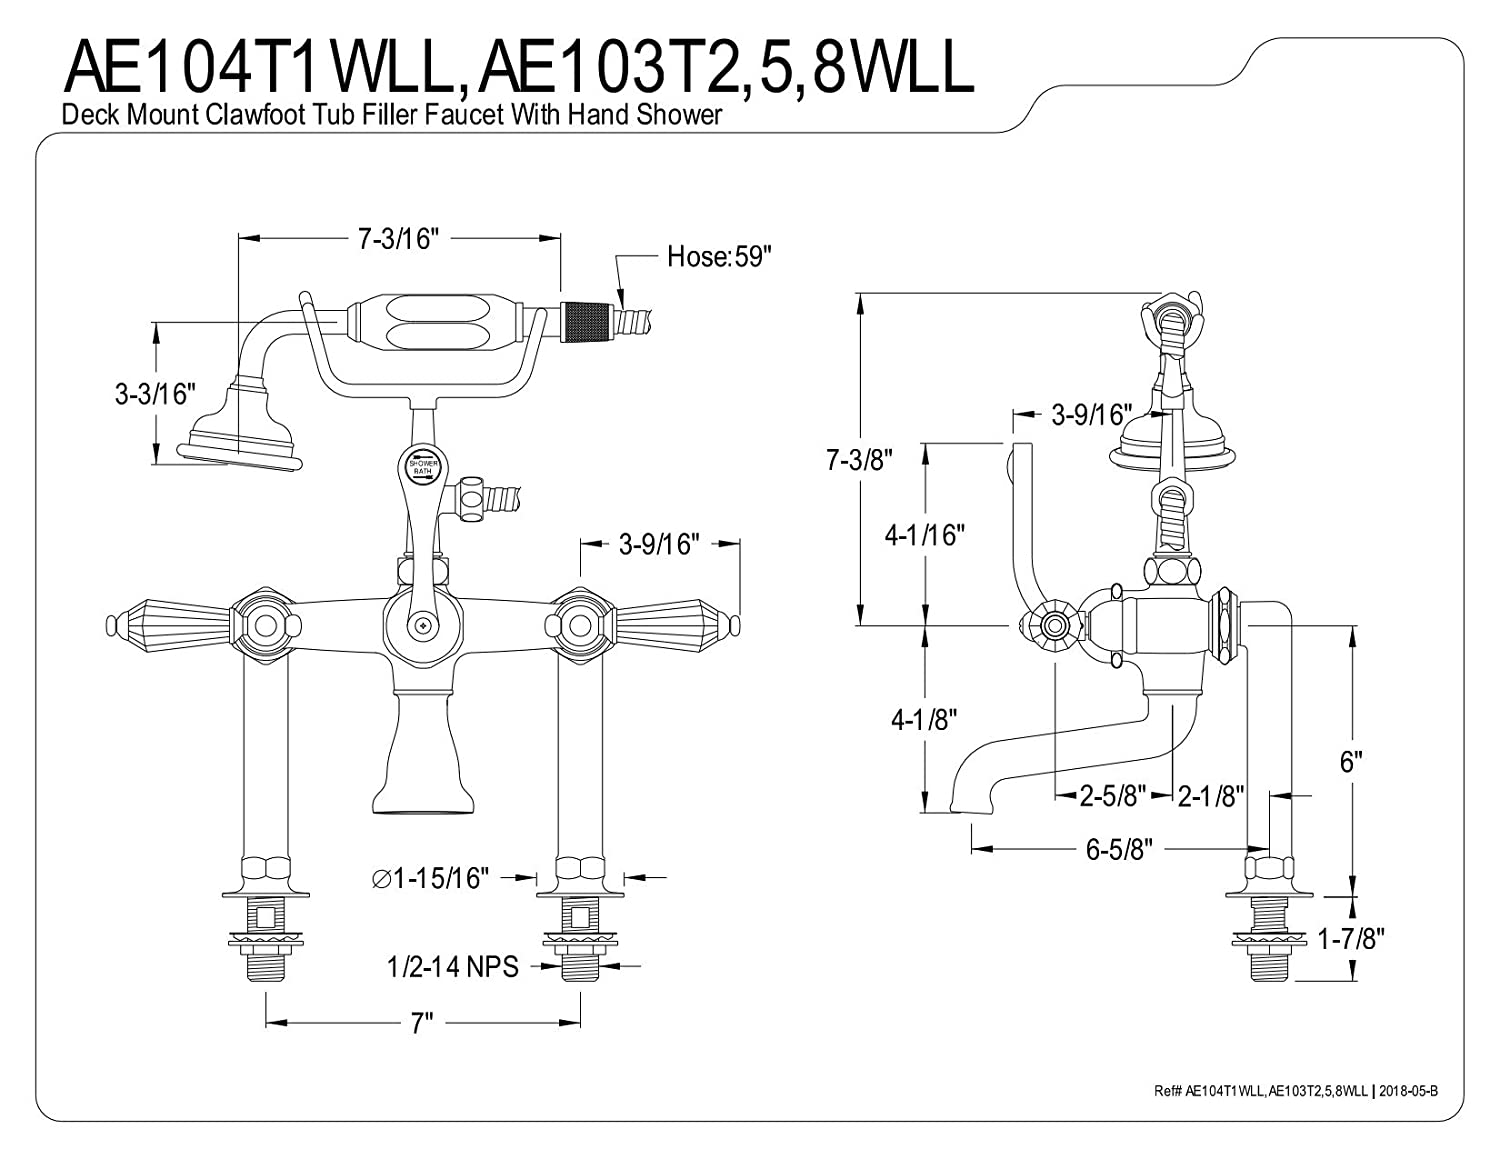 Kingston Brass AE104T1WLL Wilshire Deck Mount Clawfoot Tub Faucet 7 in Spout Reach Polished Chrome